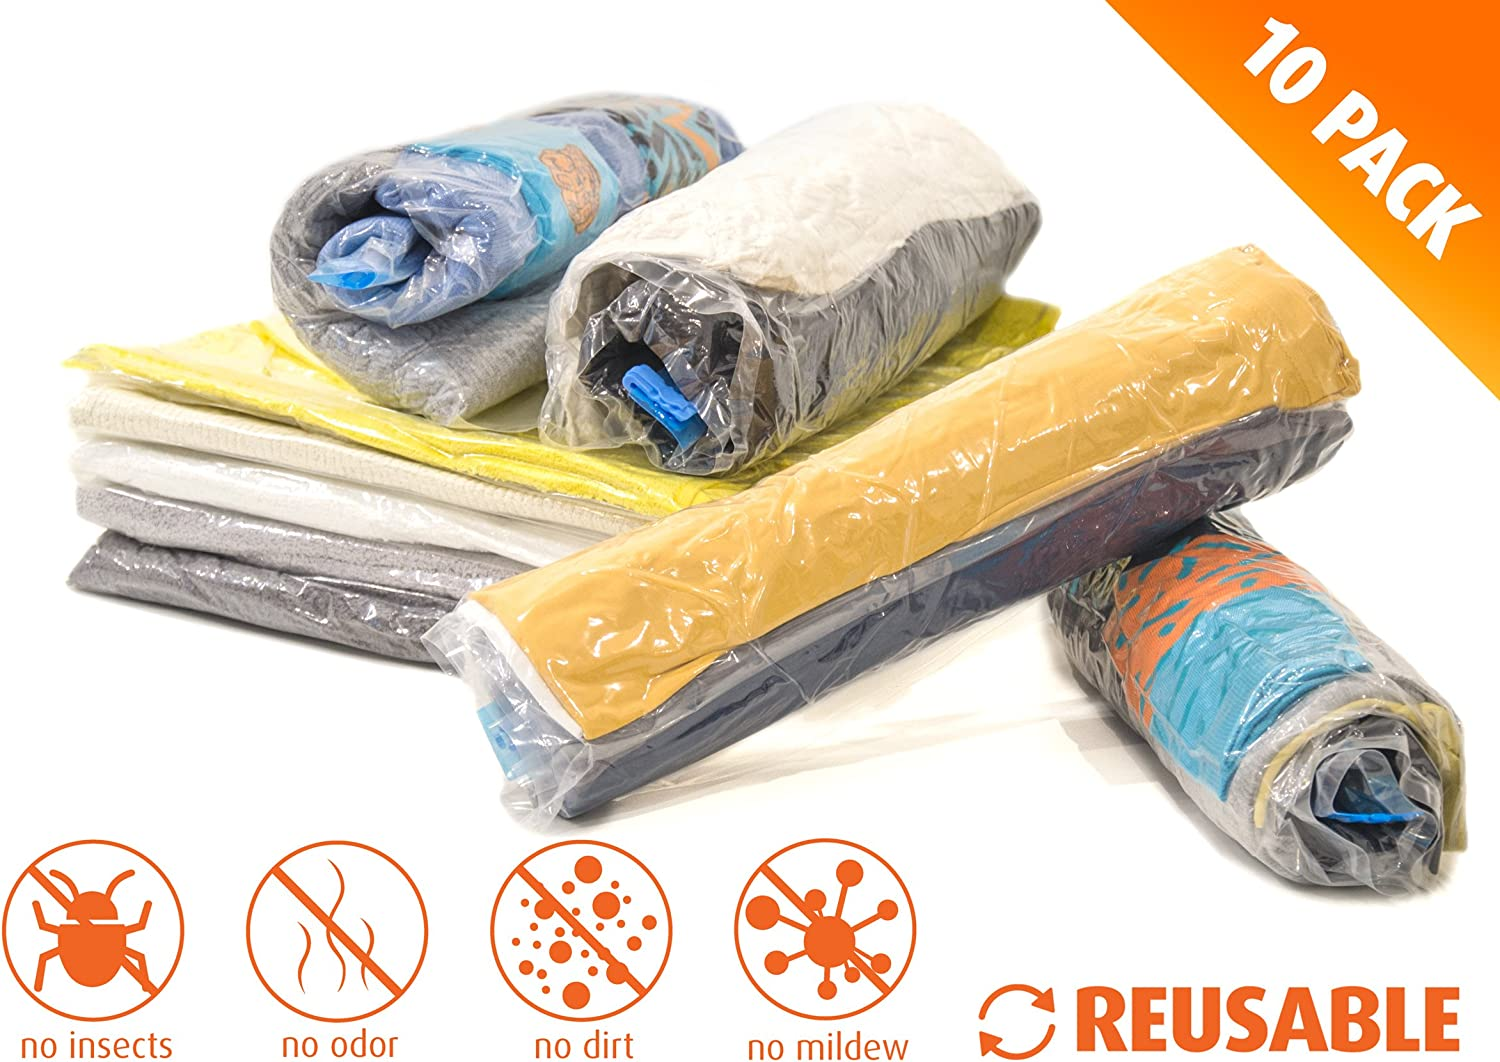 5X Medium 24x16 inches TeroHouse 10 Travel Storage Bags for Clothes Space Saver Packing Sacks Air Space Roll up Bags no Vacuum Pump Needed 5X Small 20x14 inches Rolling Compression Bag for Luggage